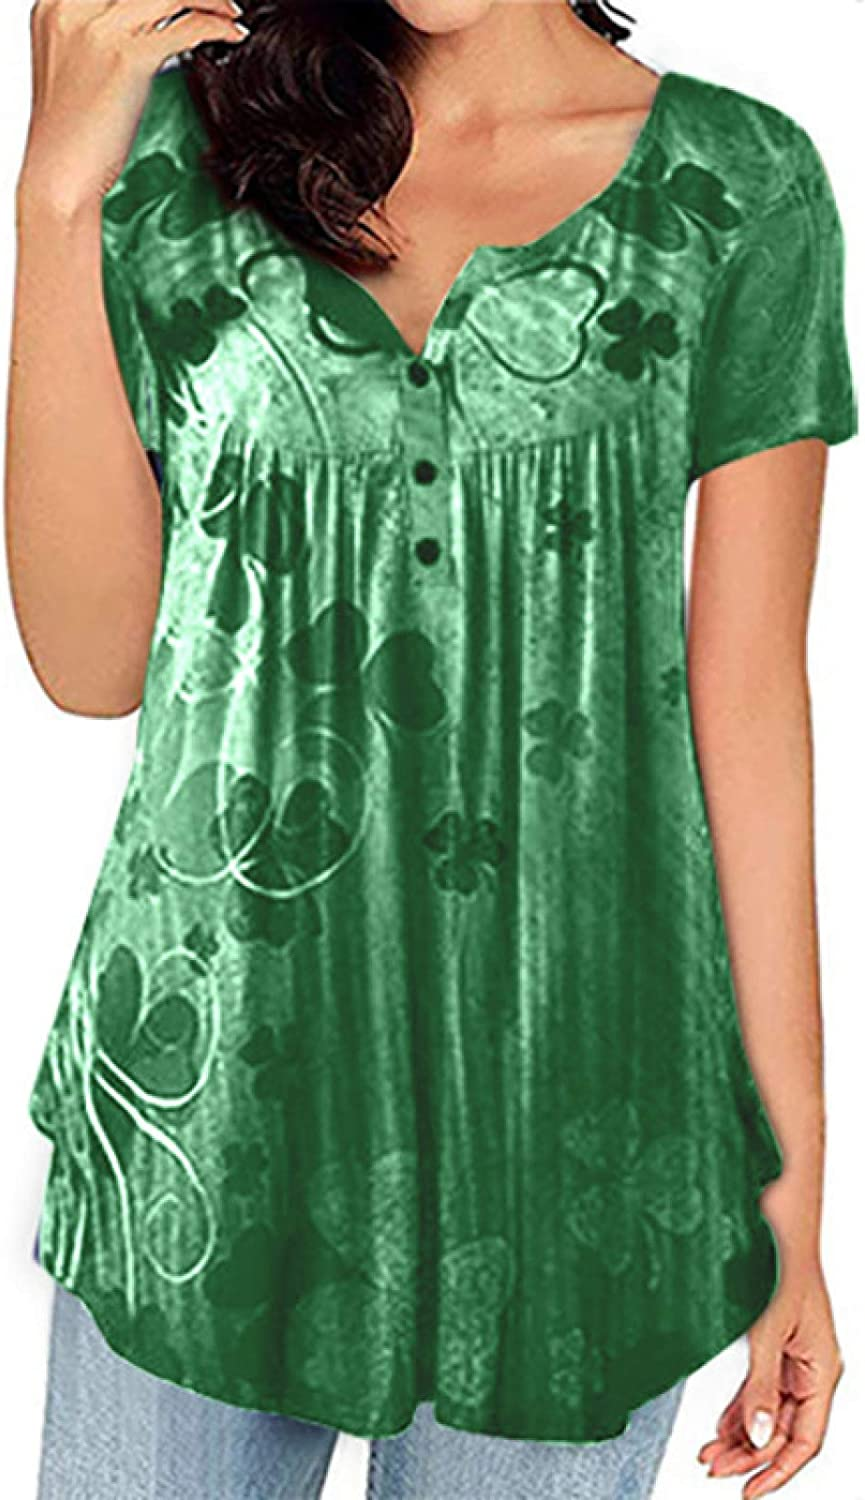 Womens Max 61% OFF Summer Max 49% OFF Tops Retro Print Long Large Size But Loose Pleated